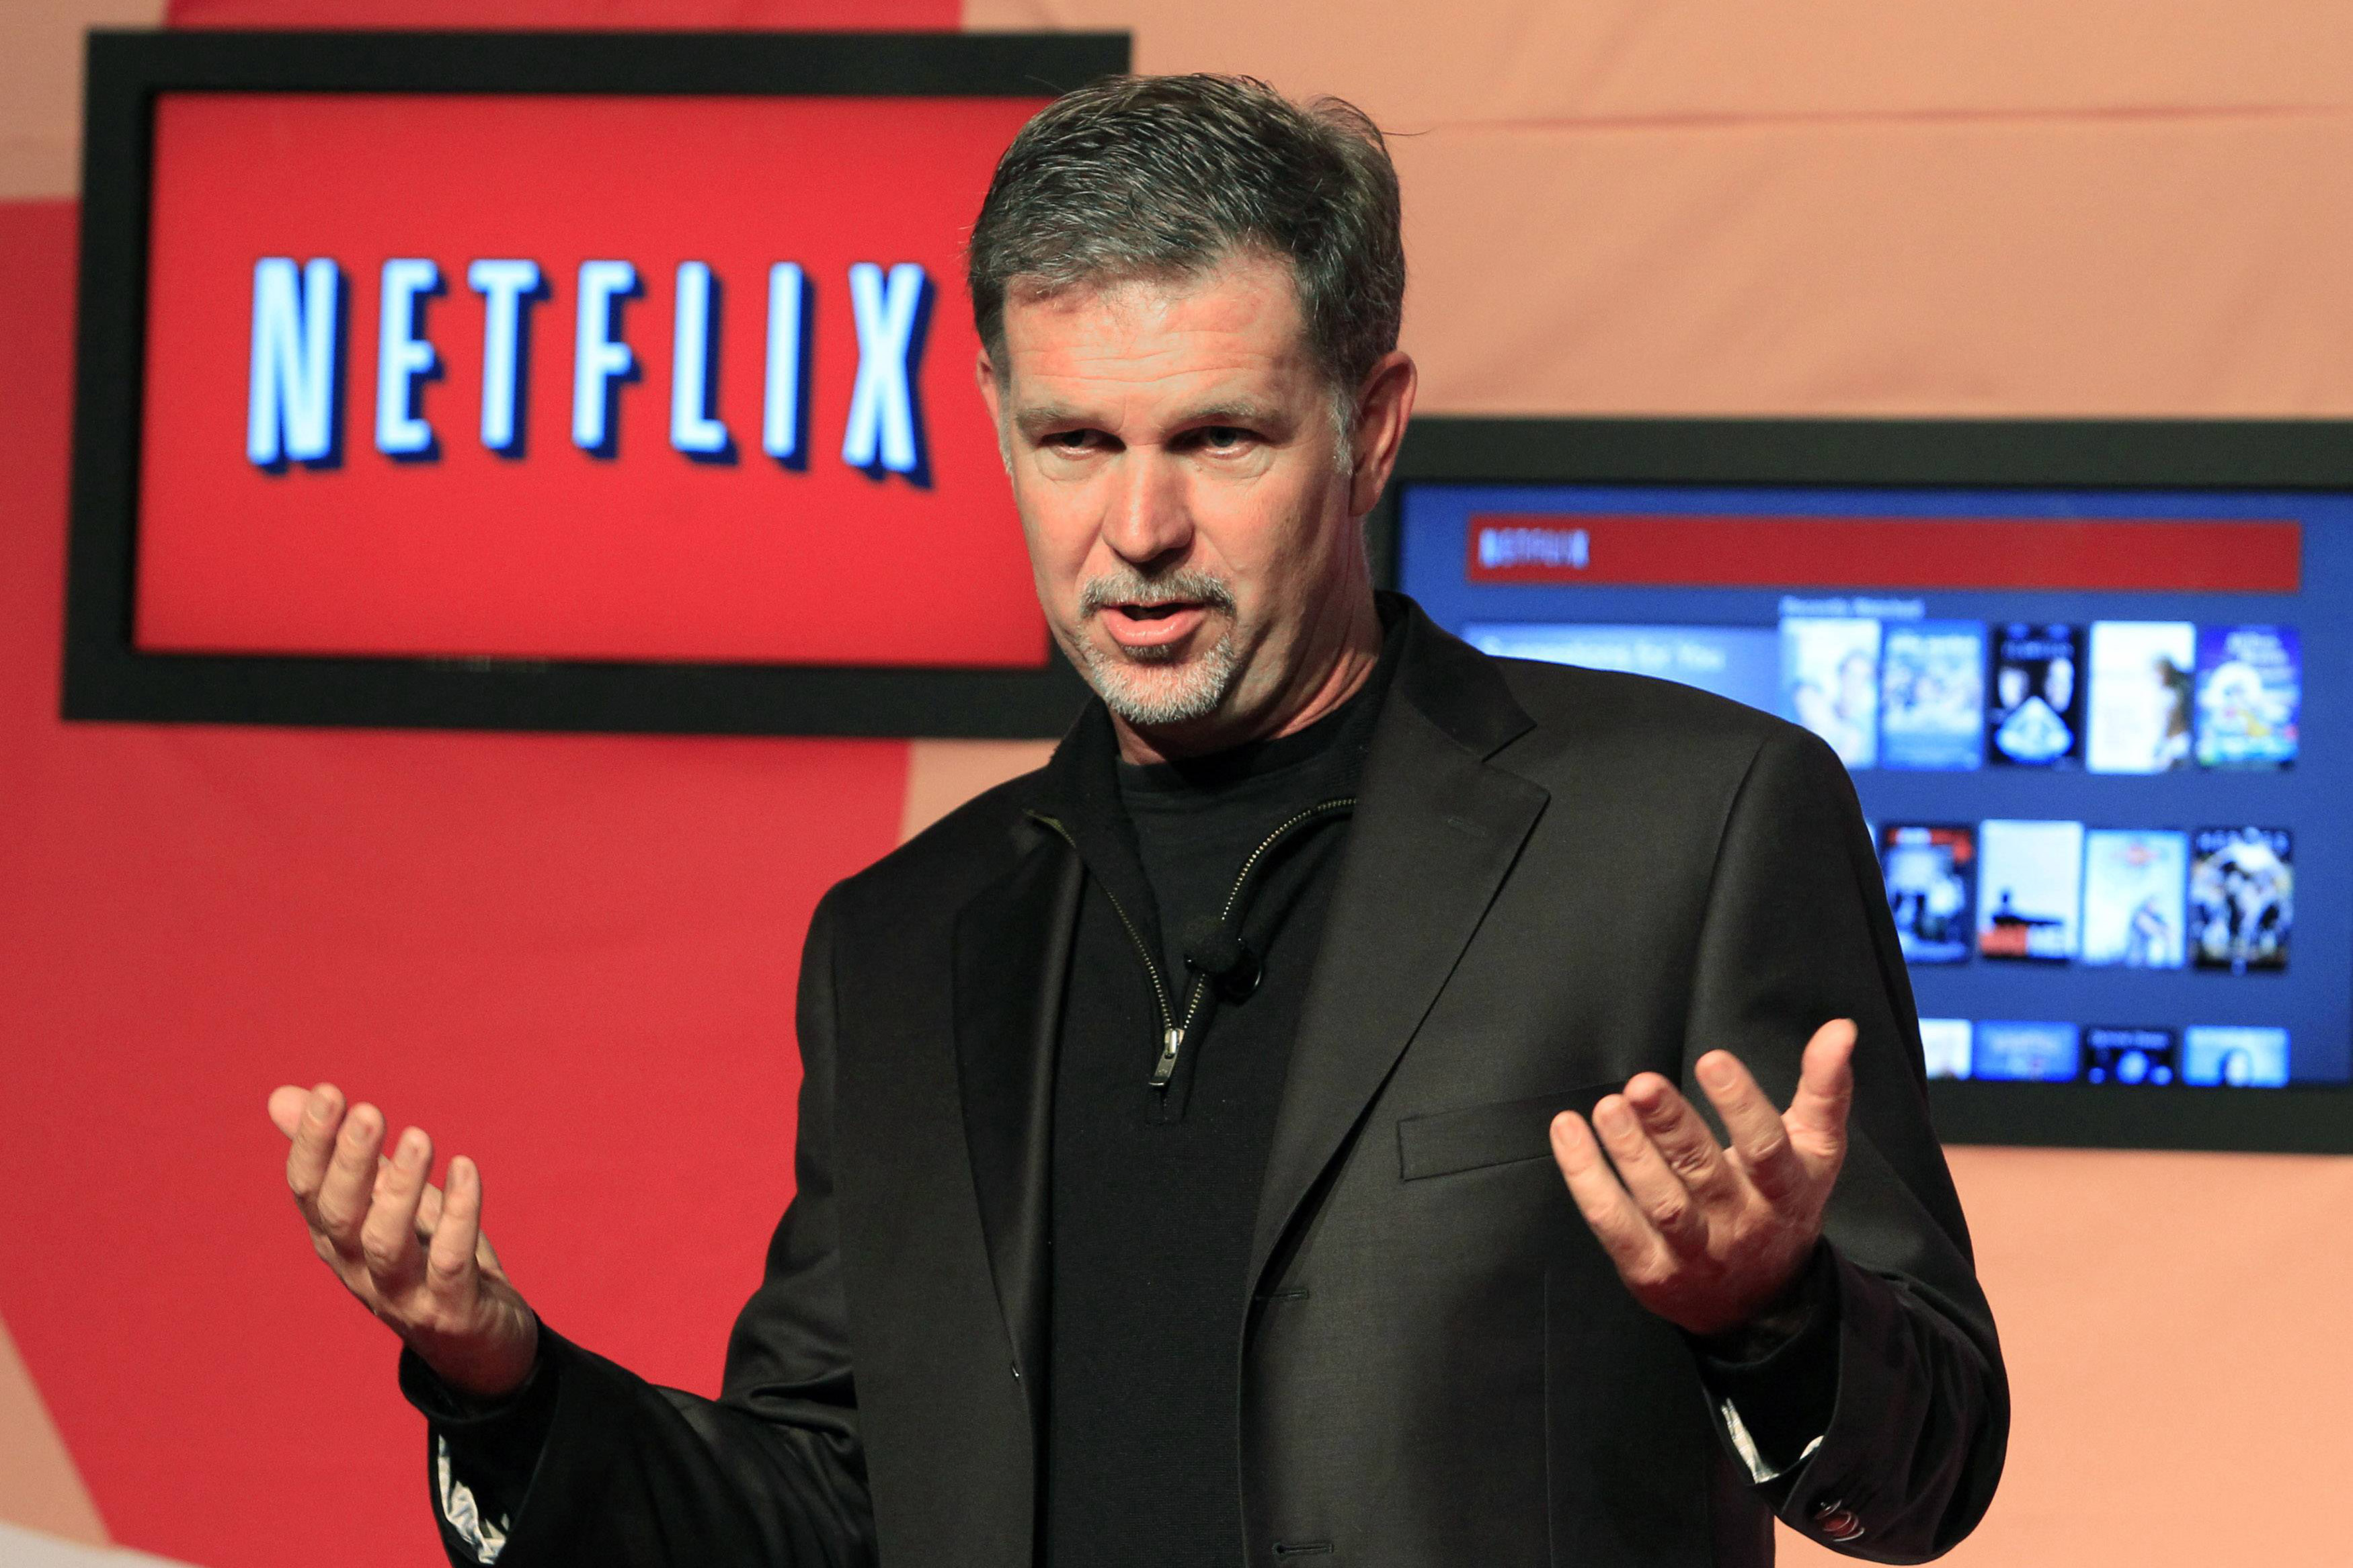 Netflix CEO Hastings